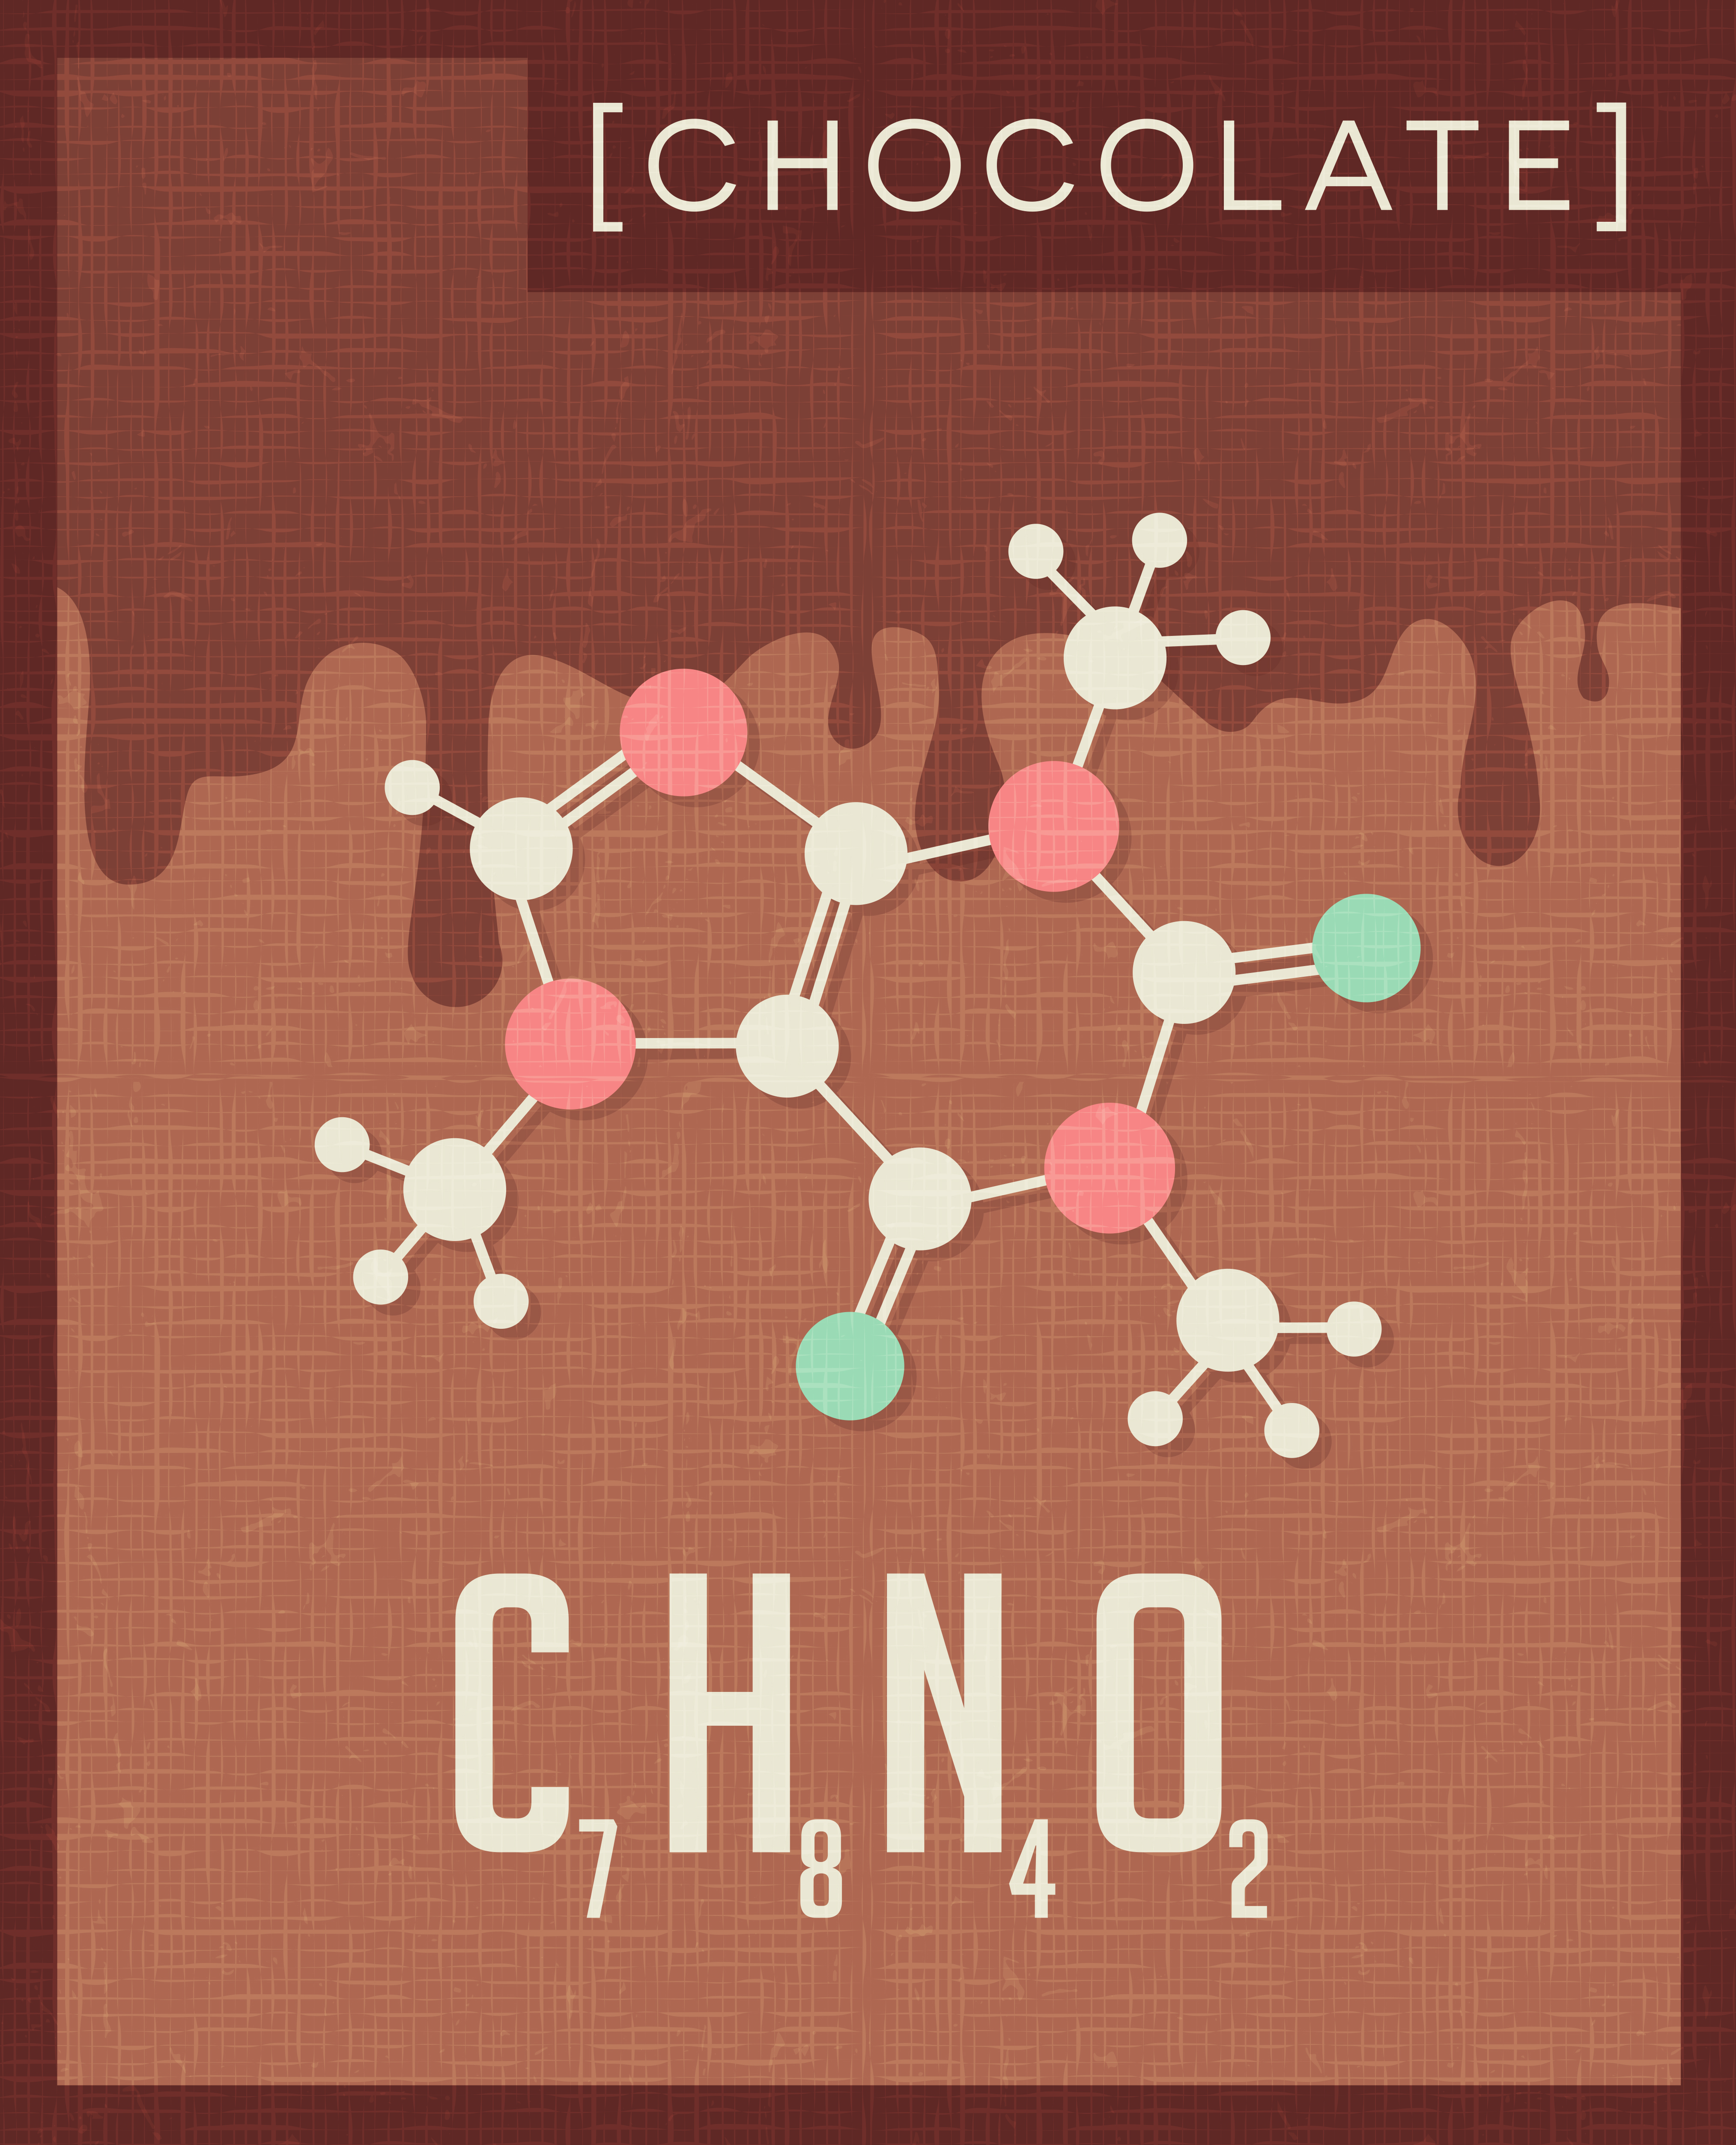 Theobromine - a main stimulant which chocolate contains, and a reason why you feel better after eating it!